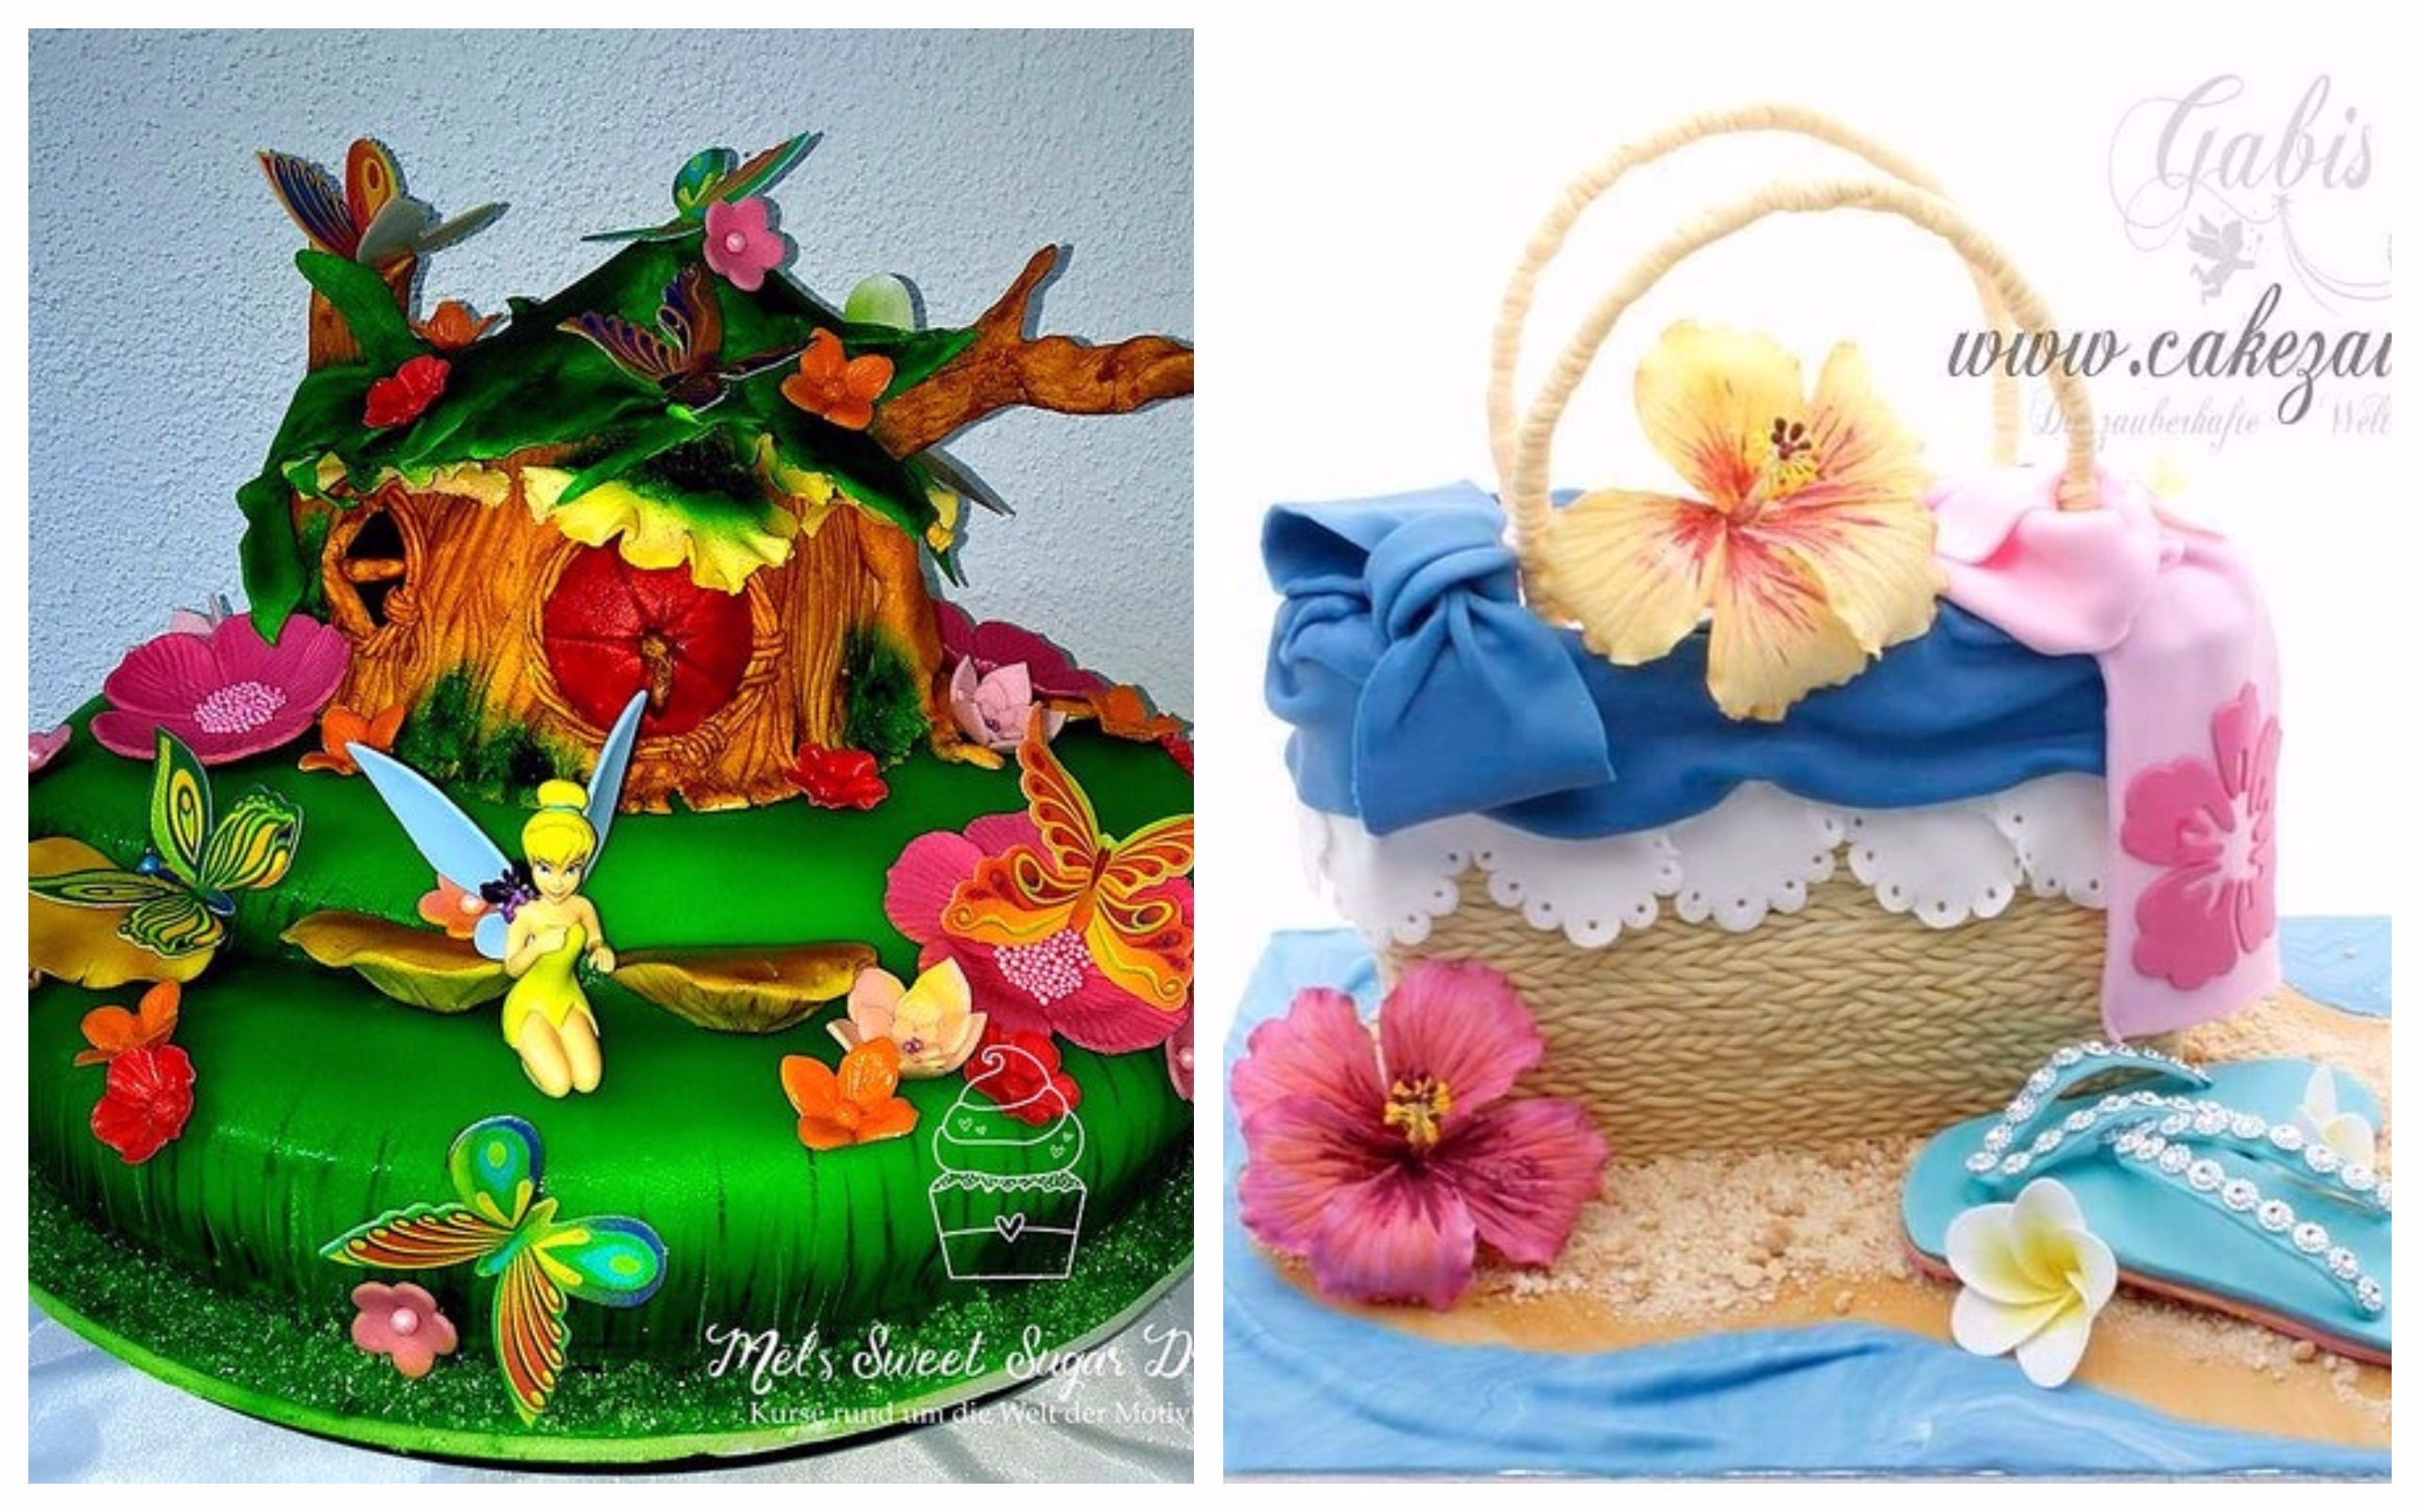 Cake Design Competition Show : Competition: Designer of the World s Super Sophisticated ...